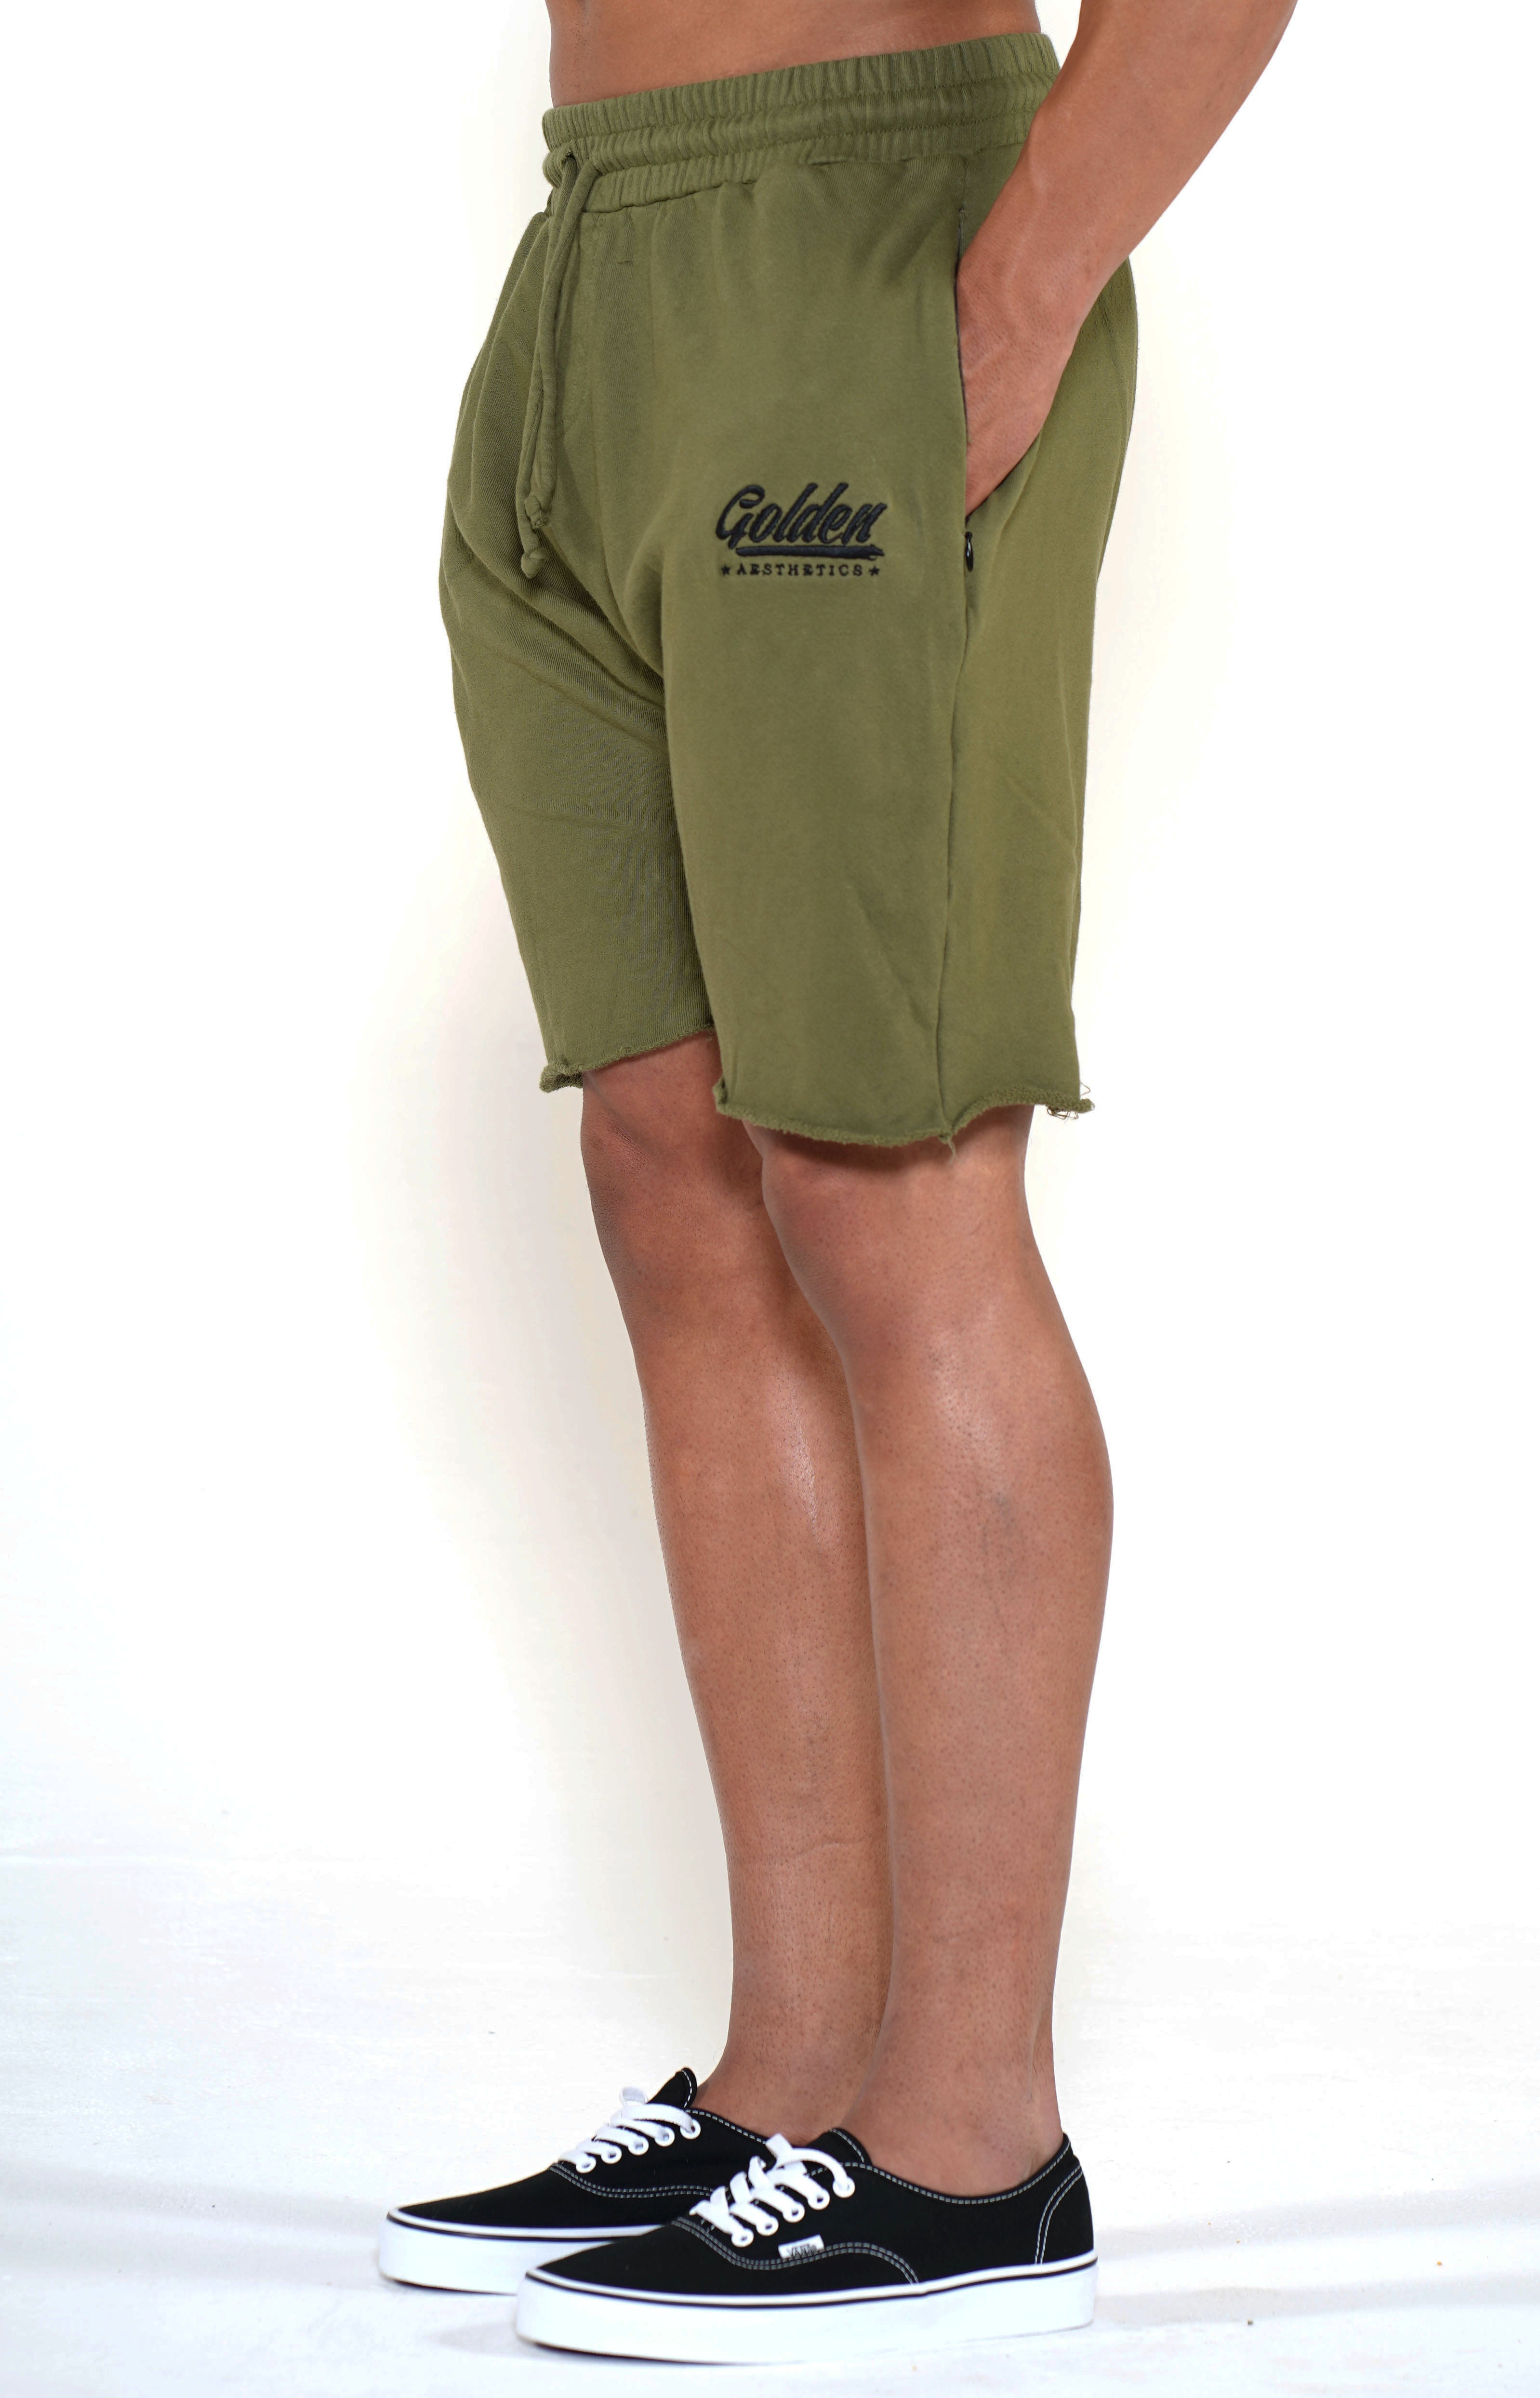 Men's Army Green Classic Shorts - Golden Aesthetics